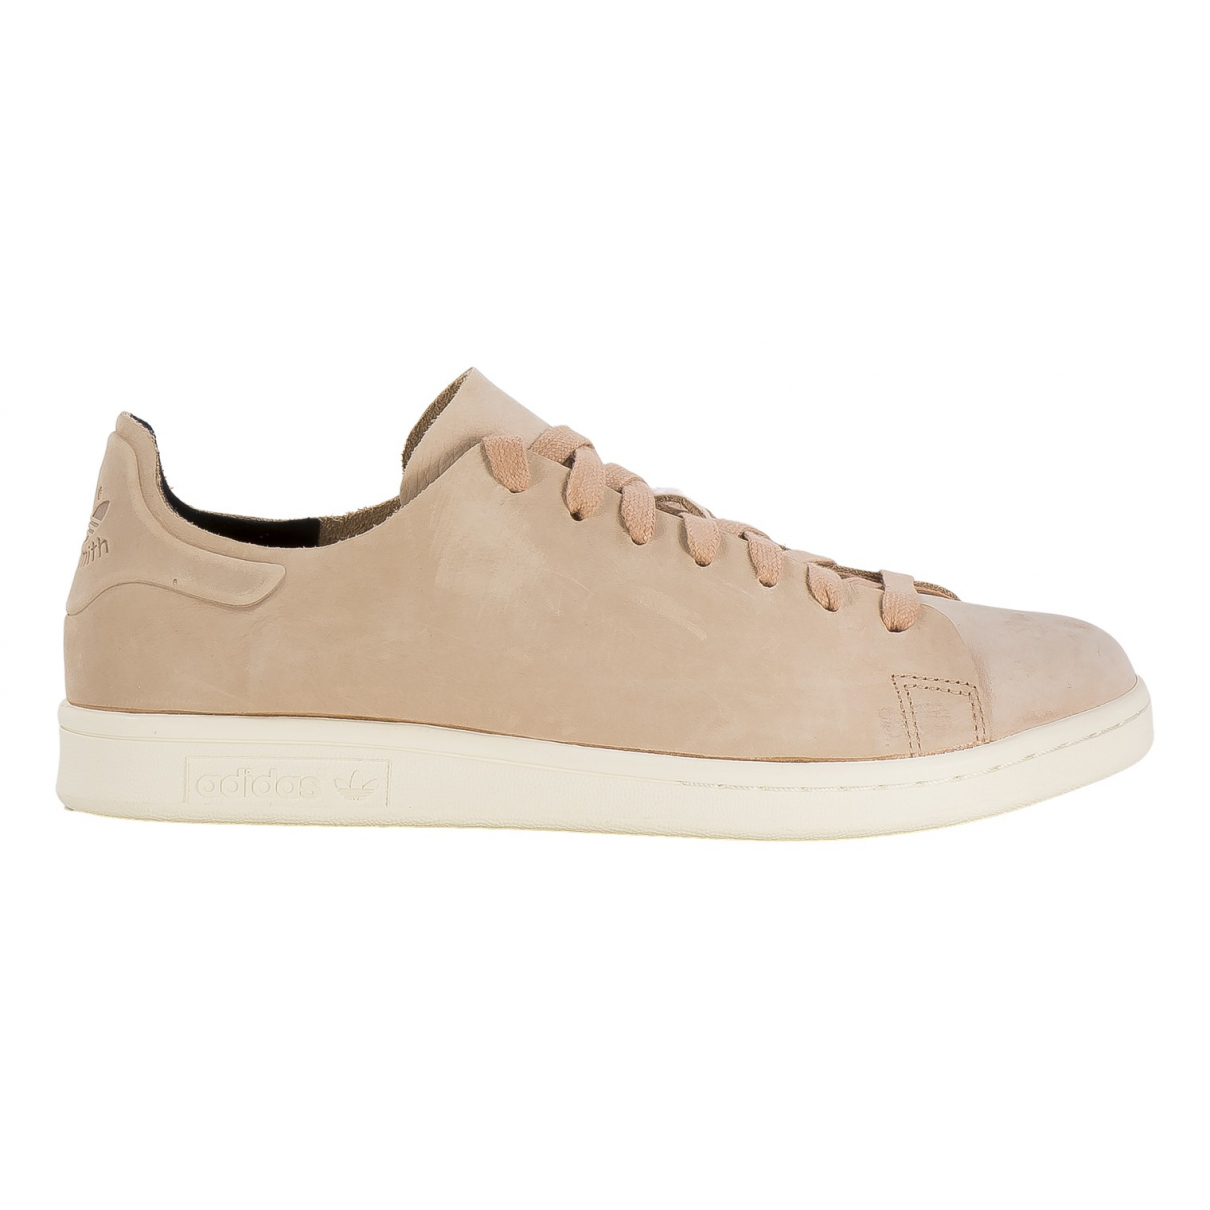 Adidas Stan Smith Beige Leather Trainers for Women 40.5 EU